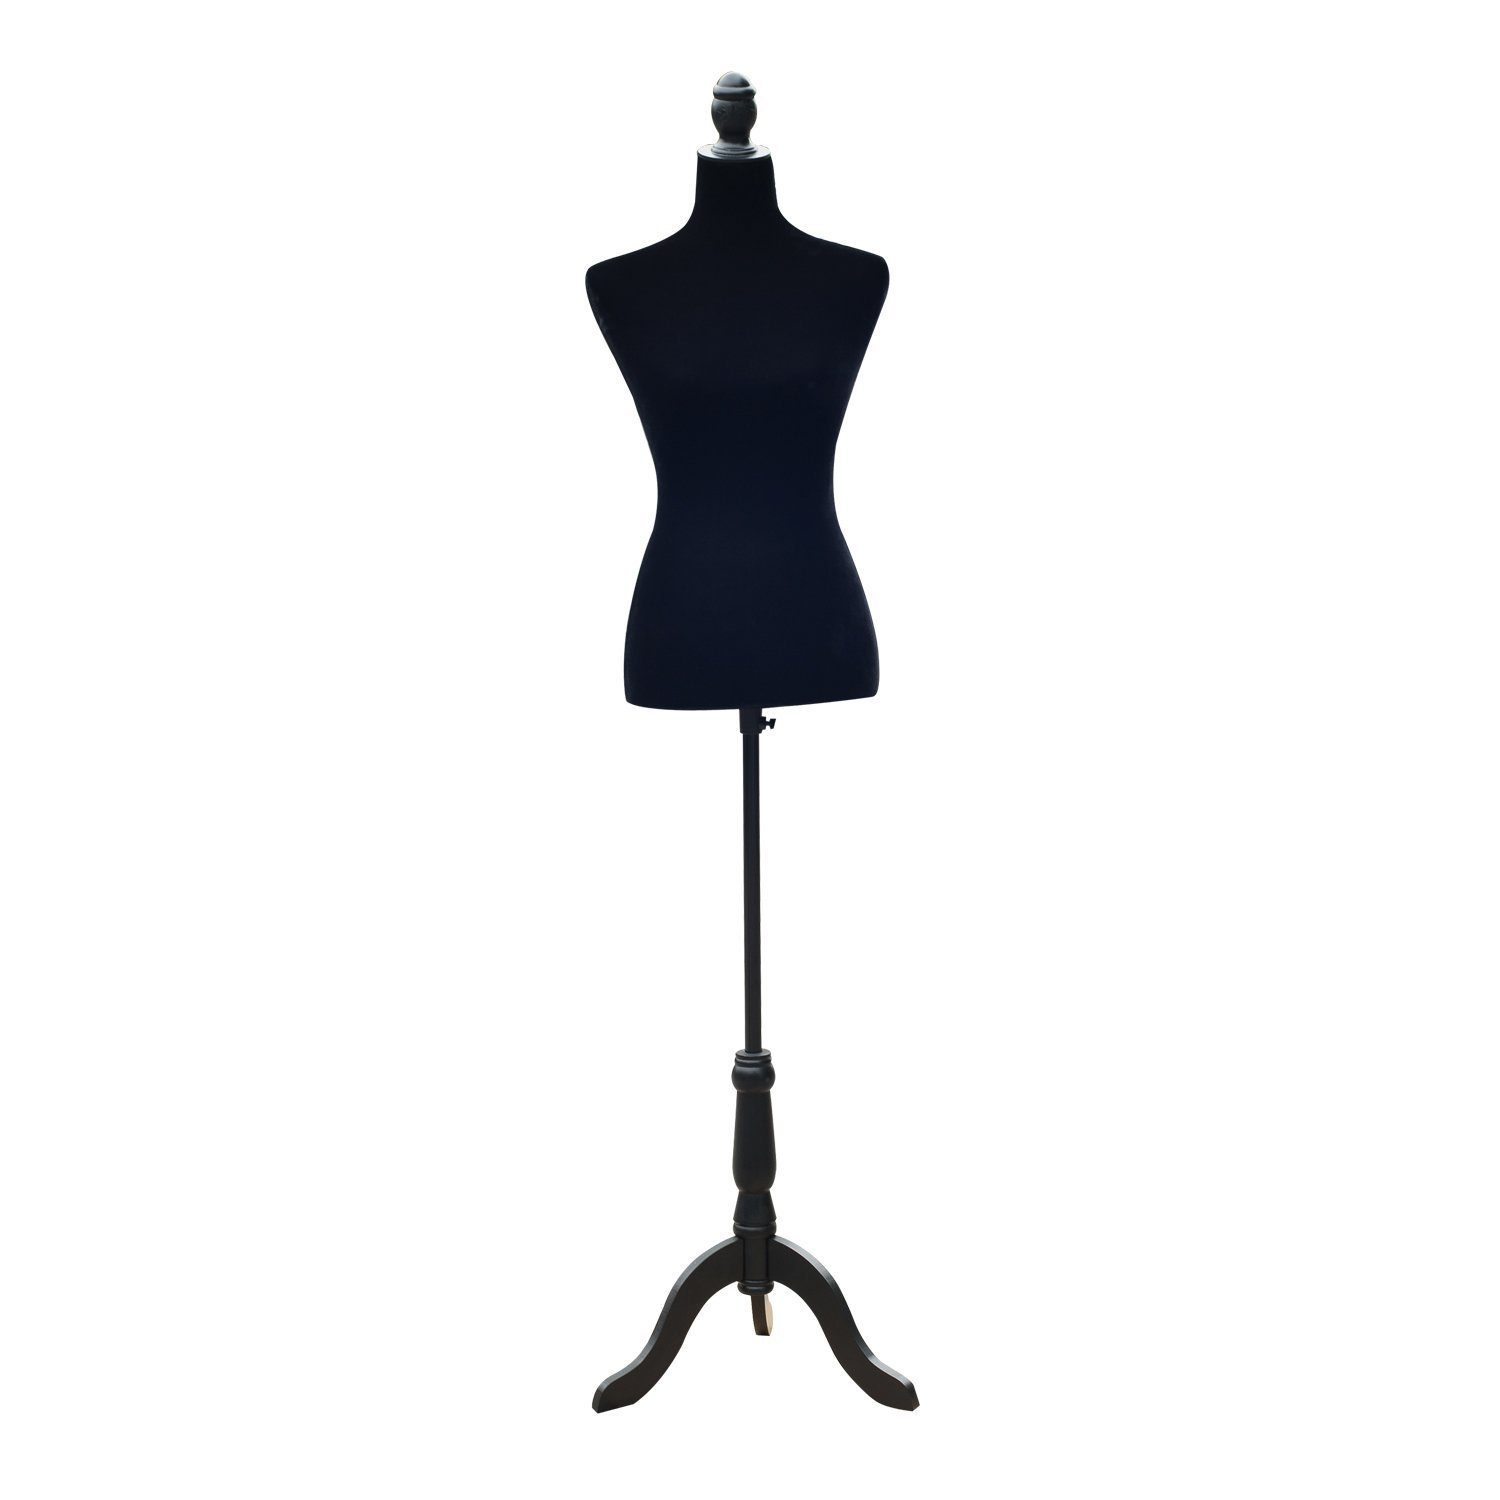 Amazon.ca: Dress Forms: Home & Kitchen